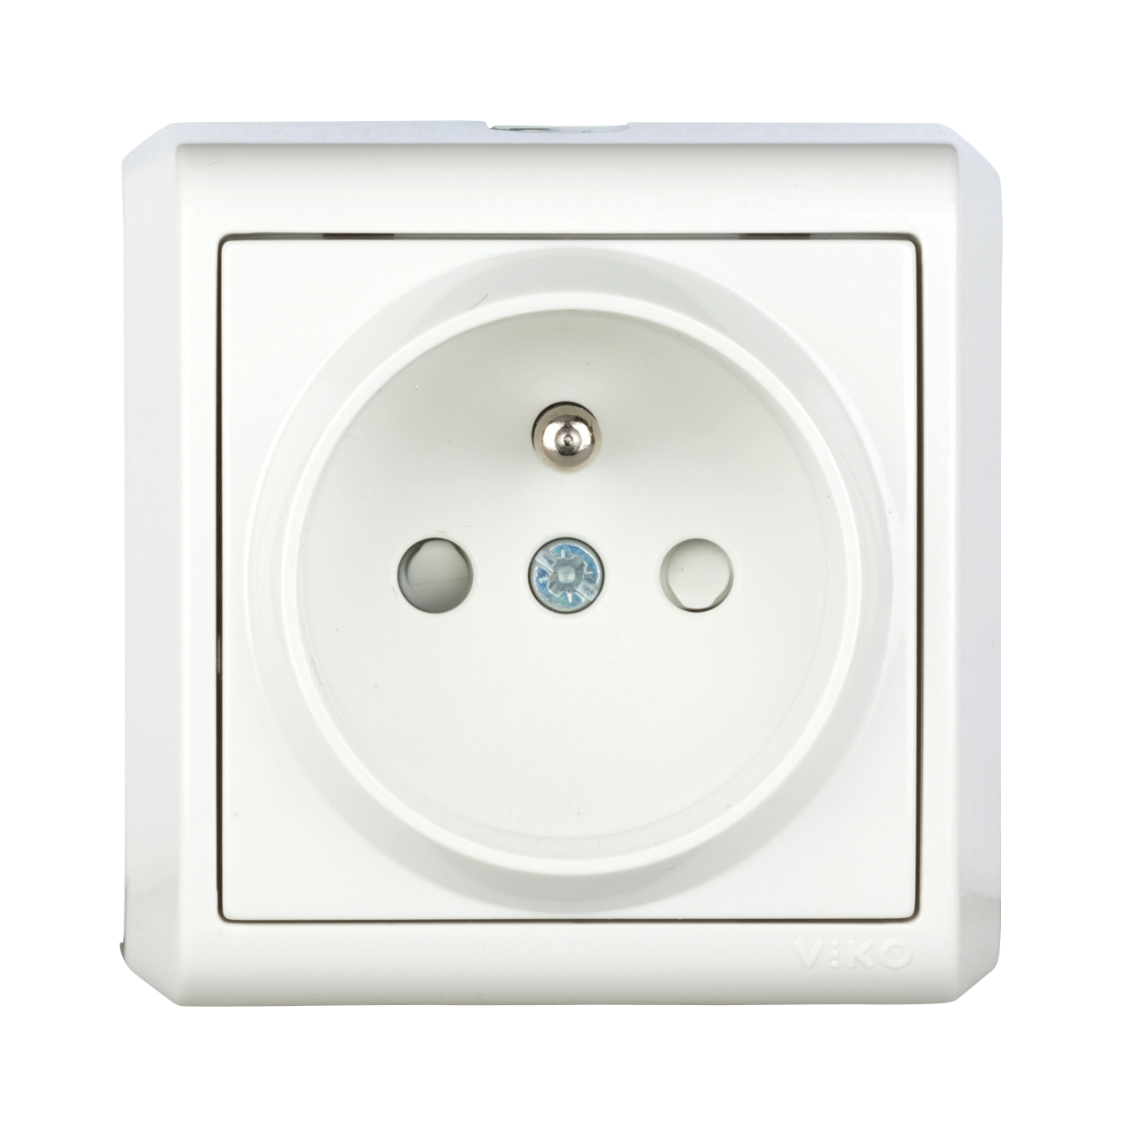 Wall m. earthed pin socket, child pr, screw con, IP20, white